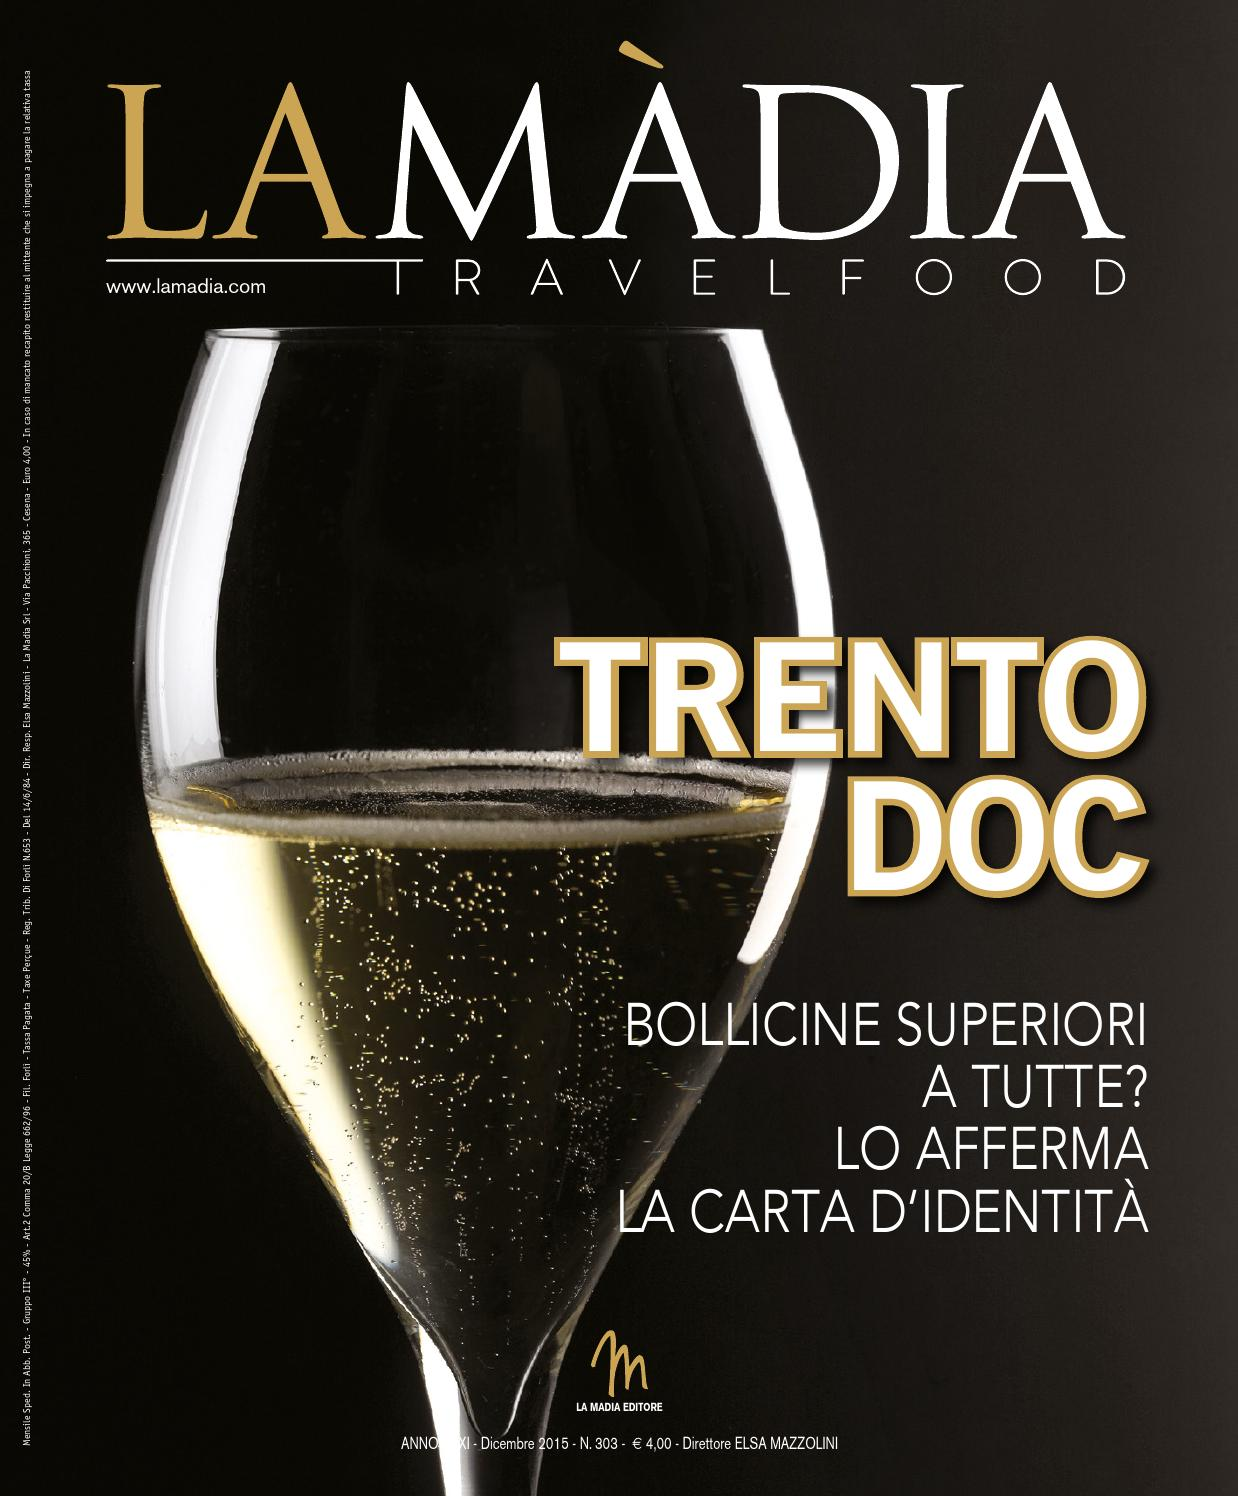 La Madia Travelfood n. 303 - Dicembre 2015 by lamadiasrl - issuu 57997c26b0a